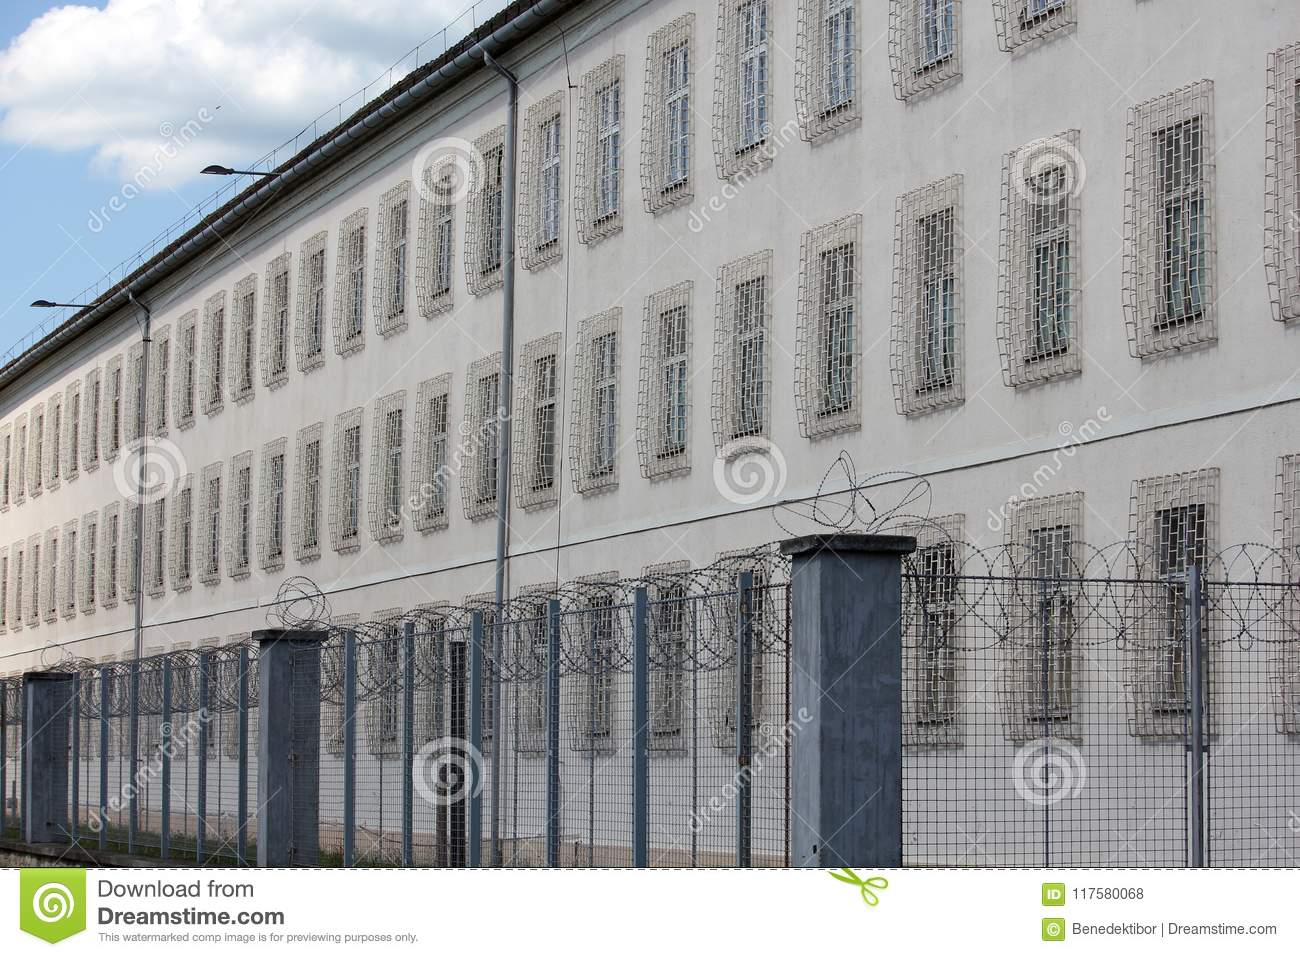 Prison building with razor wire fence